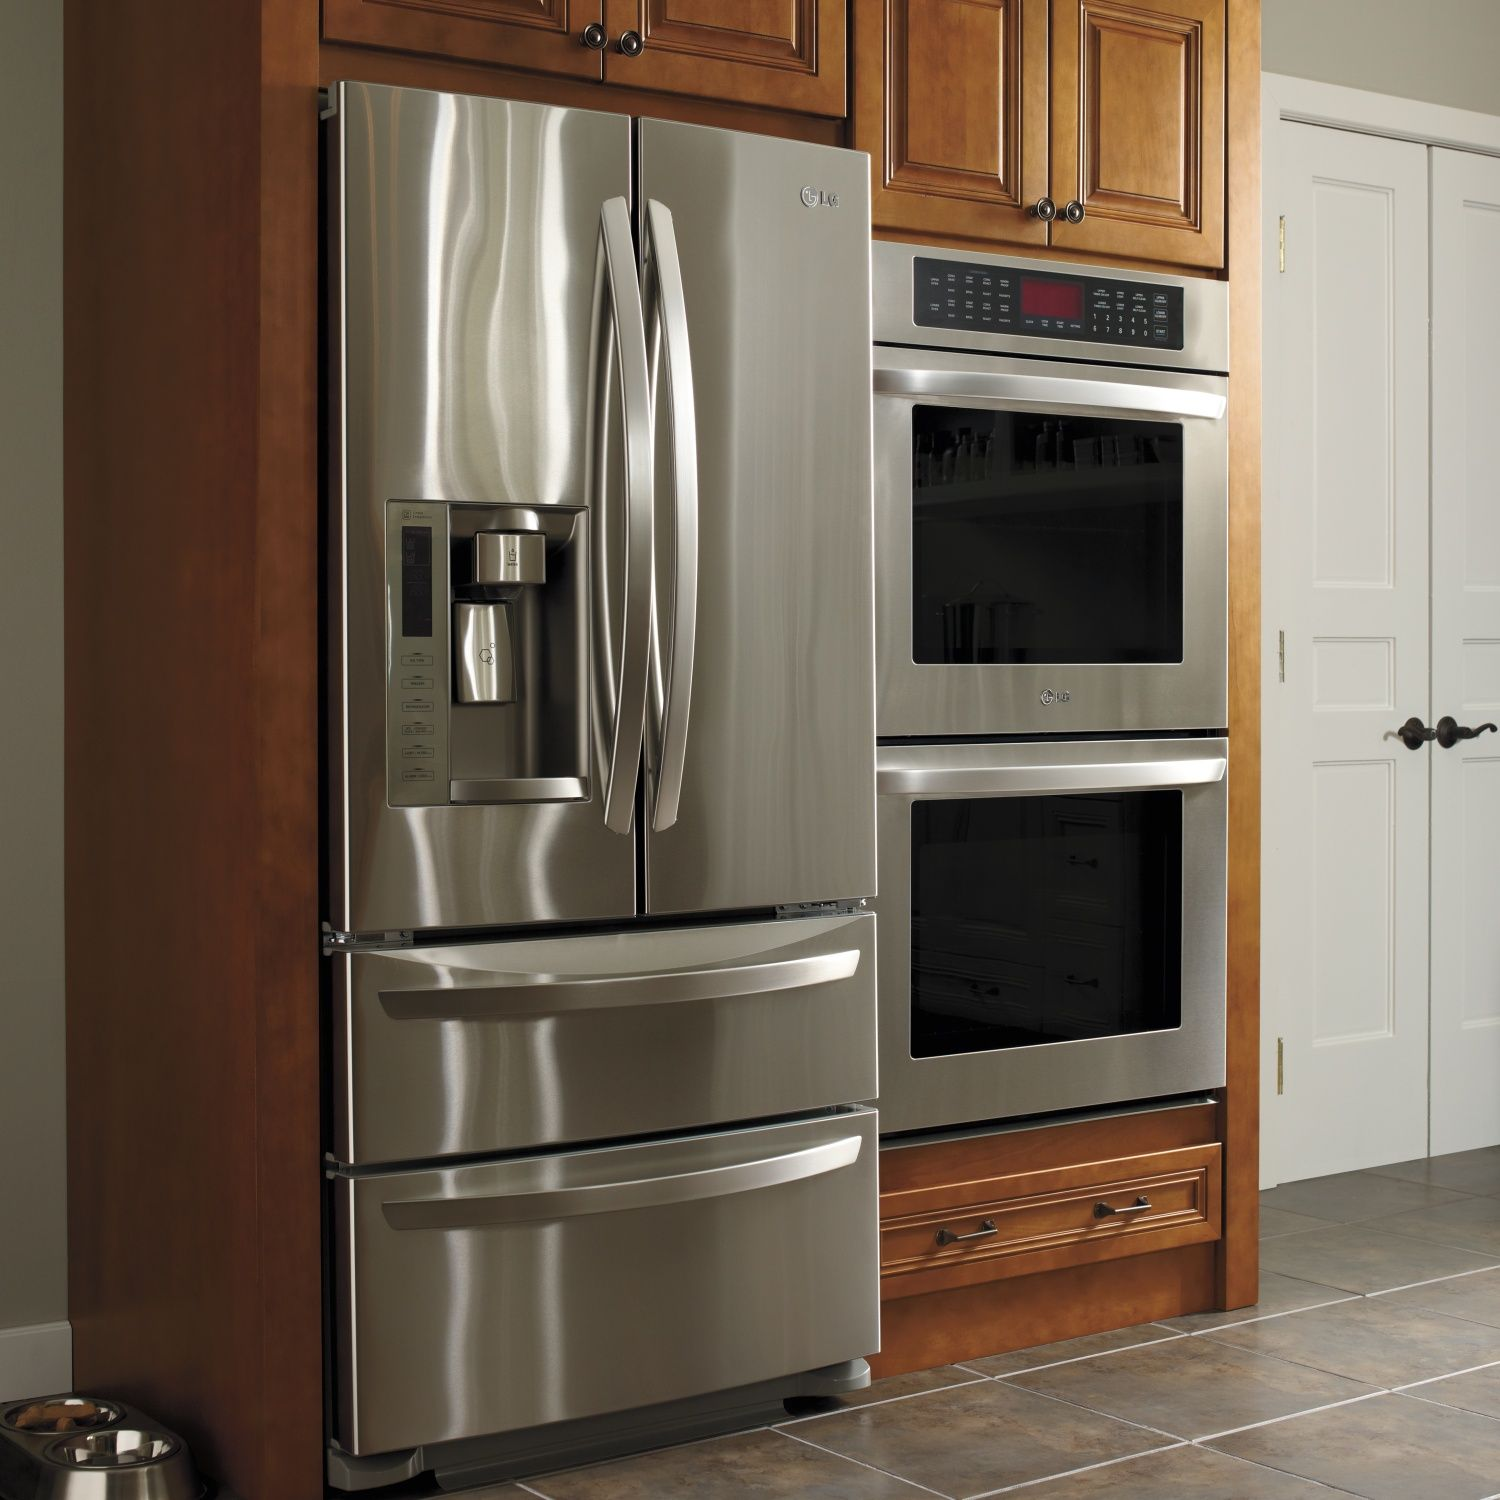 Choosing Kitchen Appliances 12 Things You Need To Know Kitchen